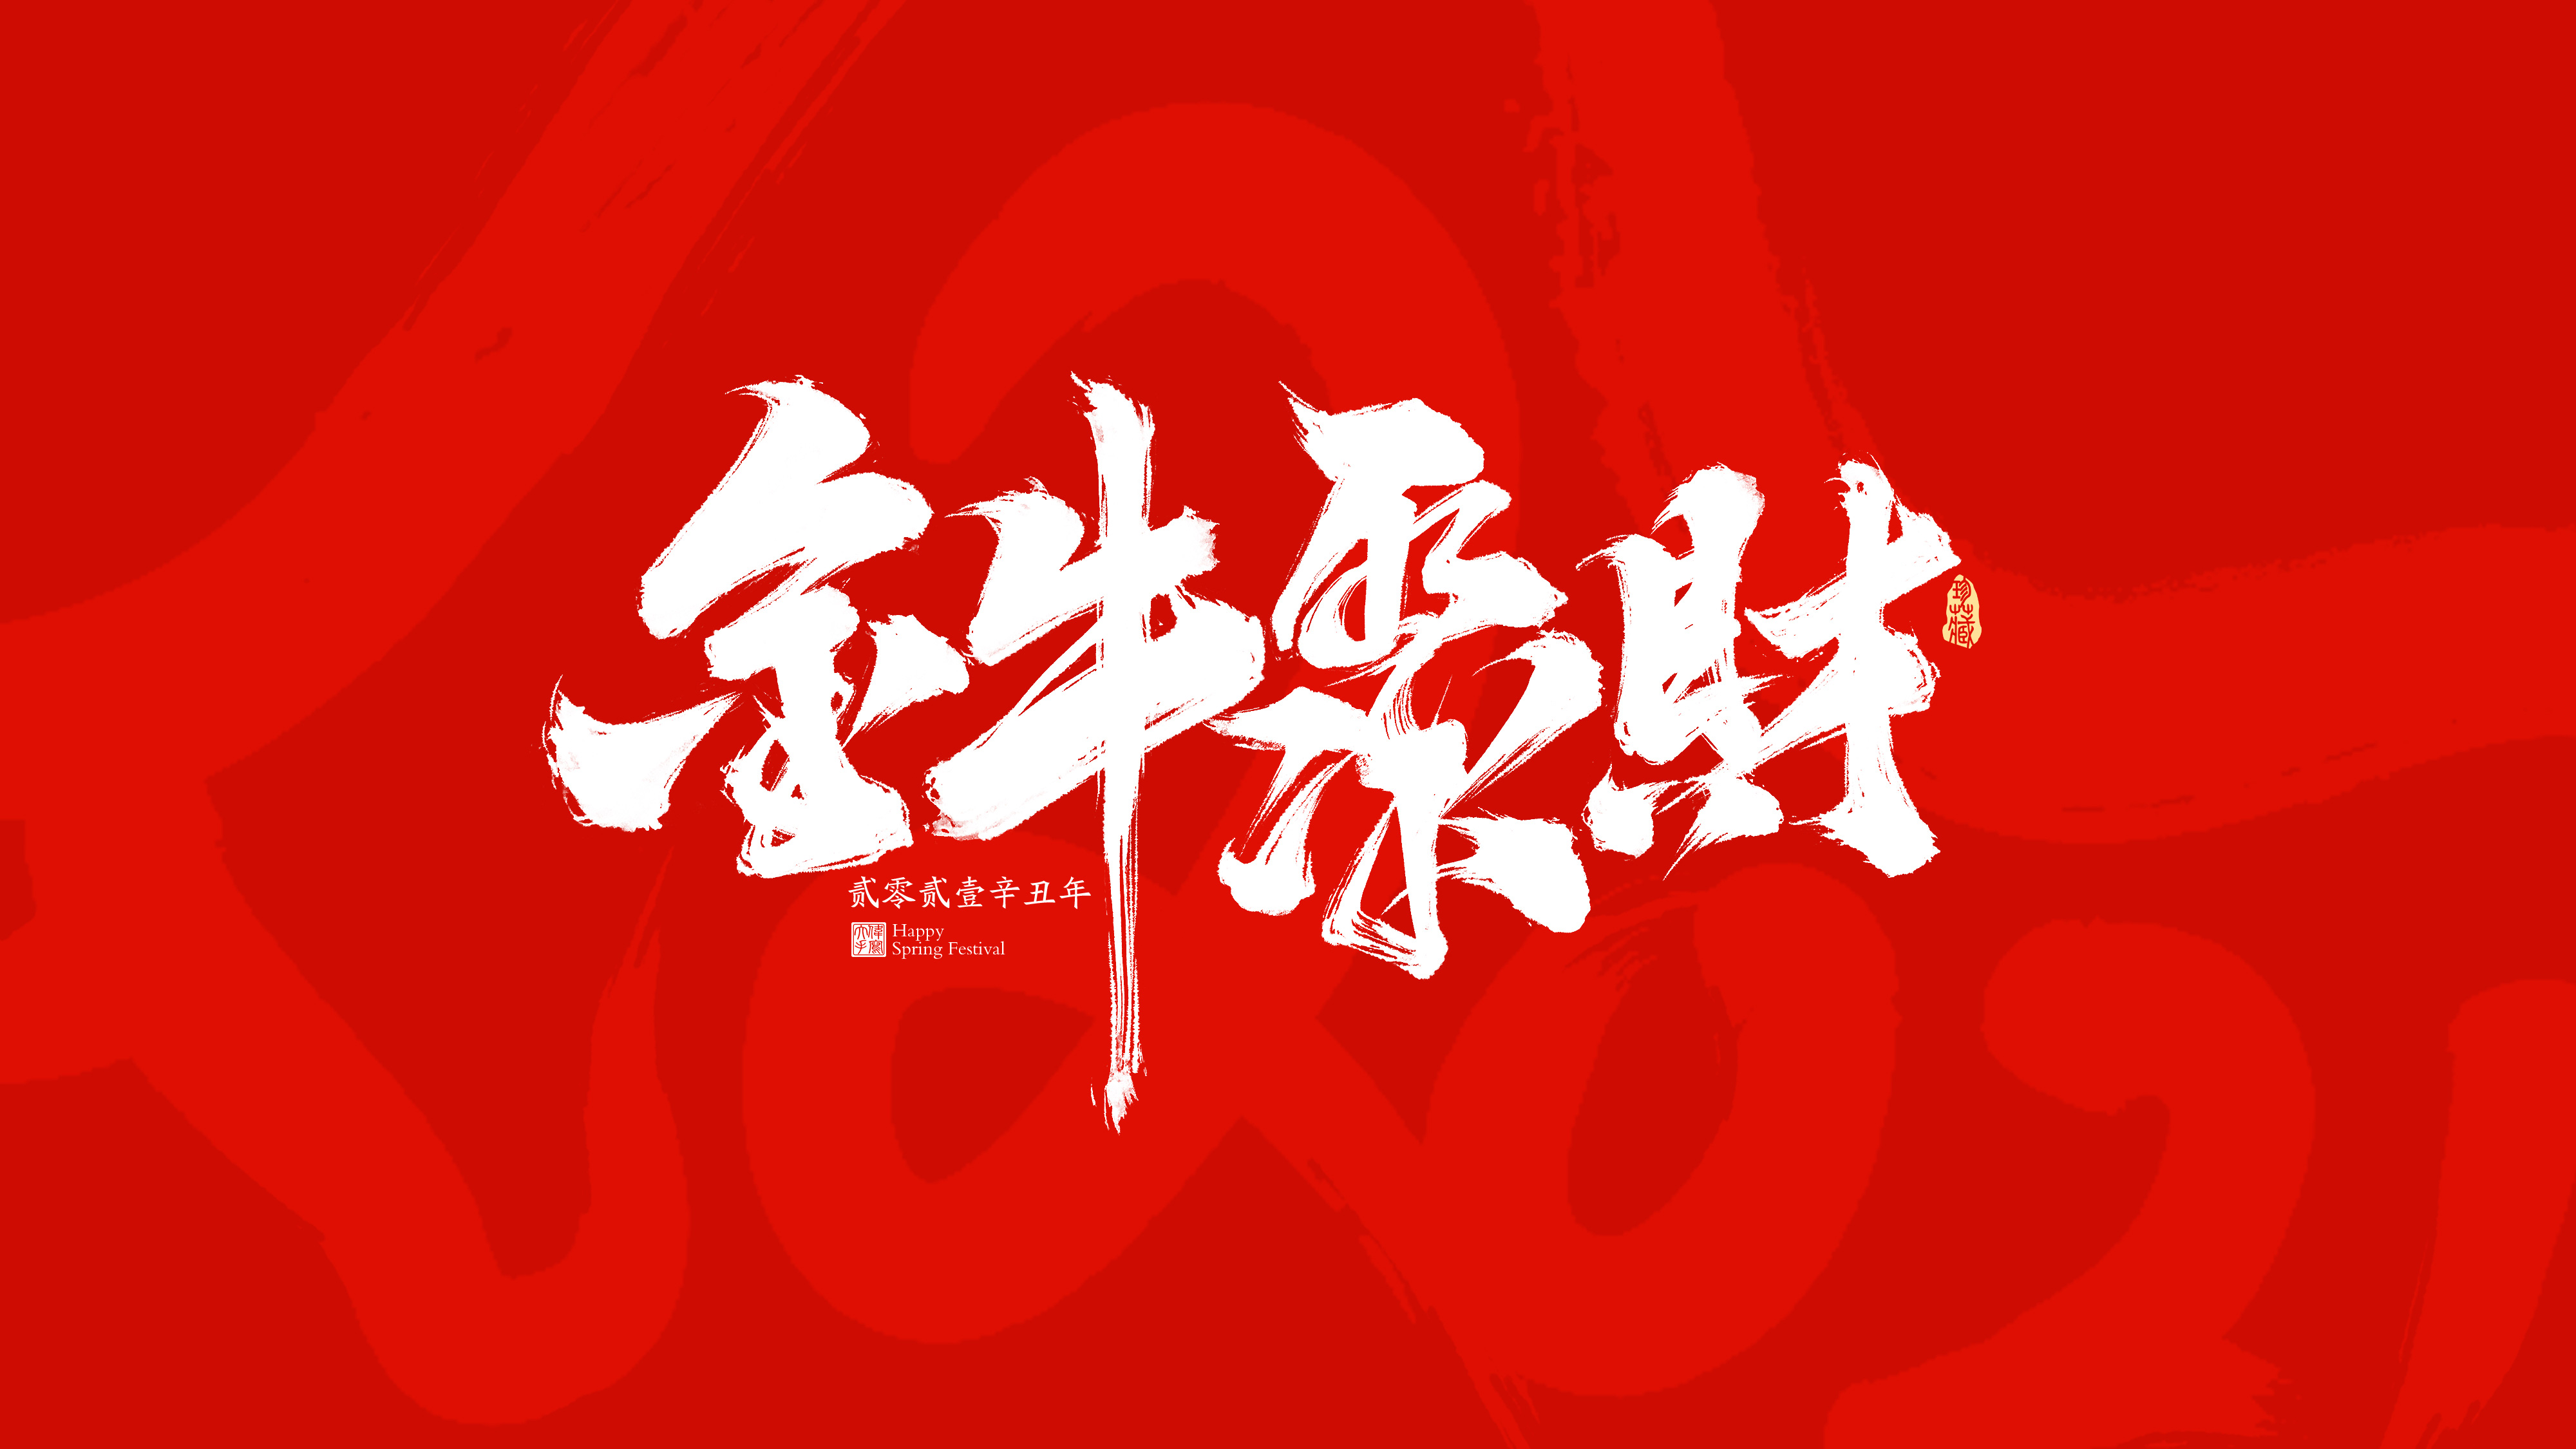 2021 Year of the Ox Spring Festival greetings